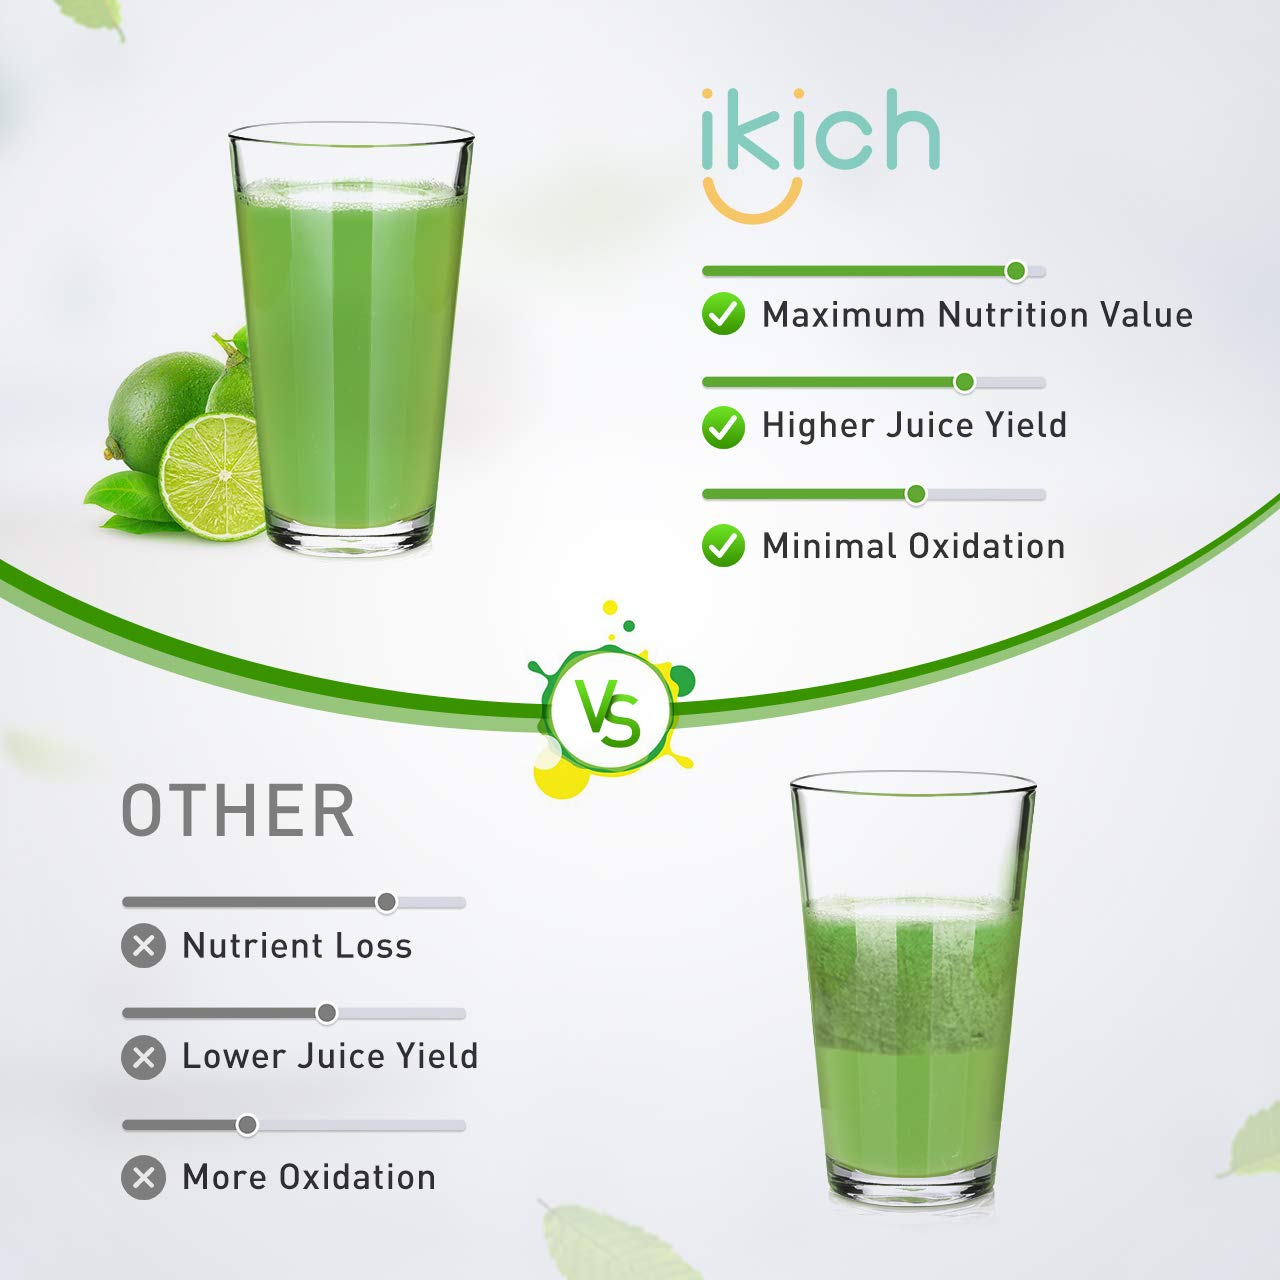 Masticating Juicer IKICH Slow Juicer with 200W Quiet Efficient Motor Compact Design Juicer Machines Easy to Clean with Juice Recipes , Brush , Cold Press Juicer with BPA-Free, FDA Approved by IKICH (Image #3)